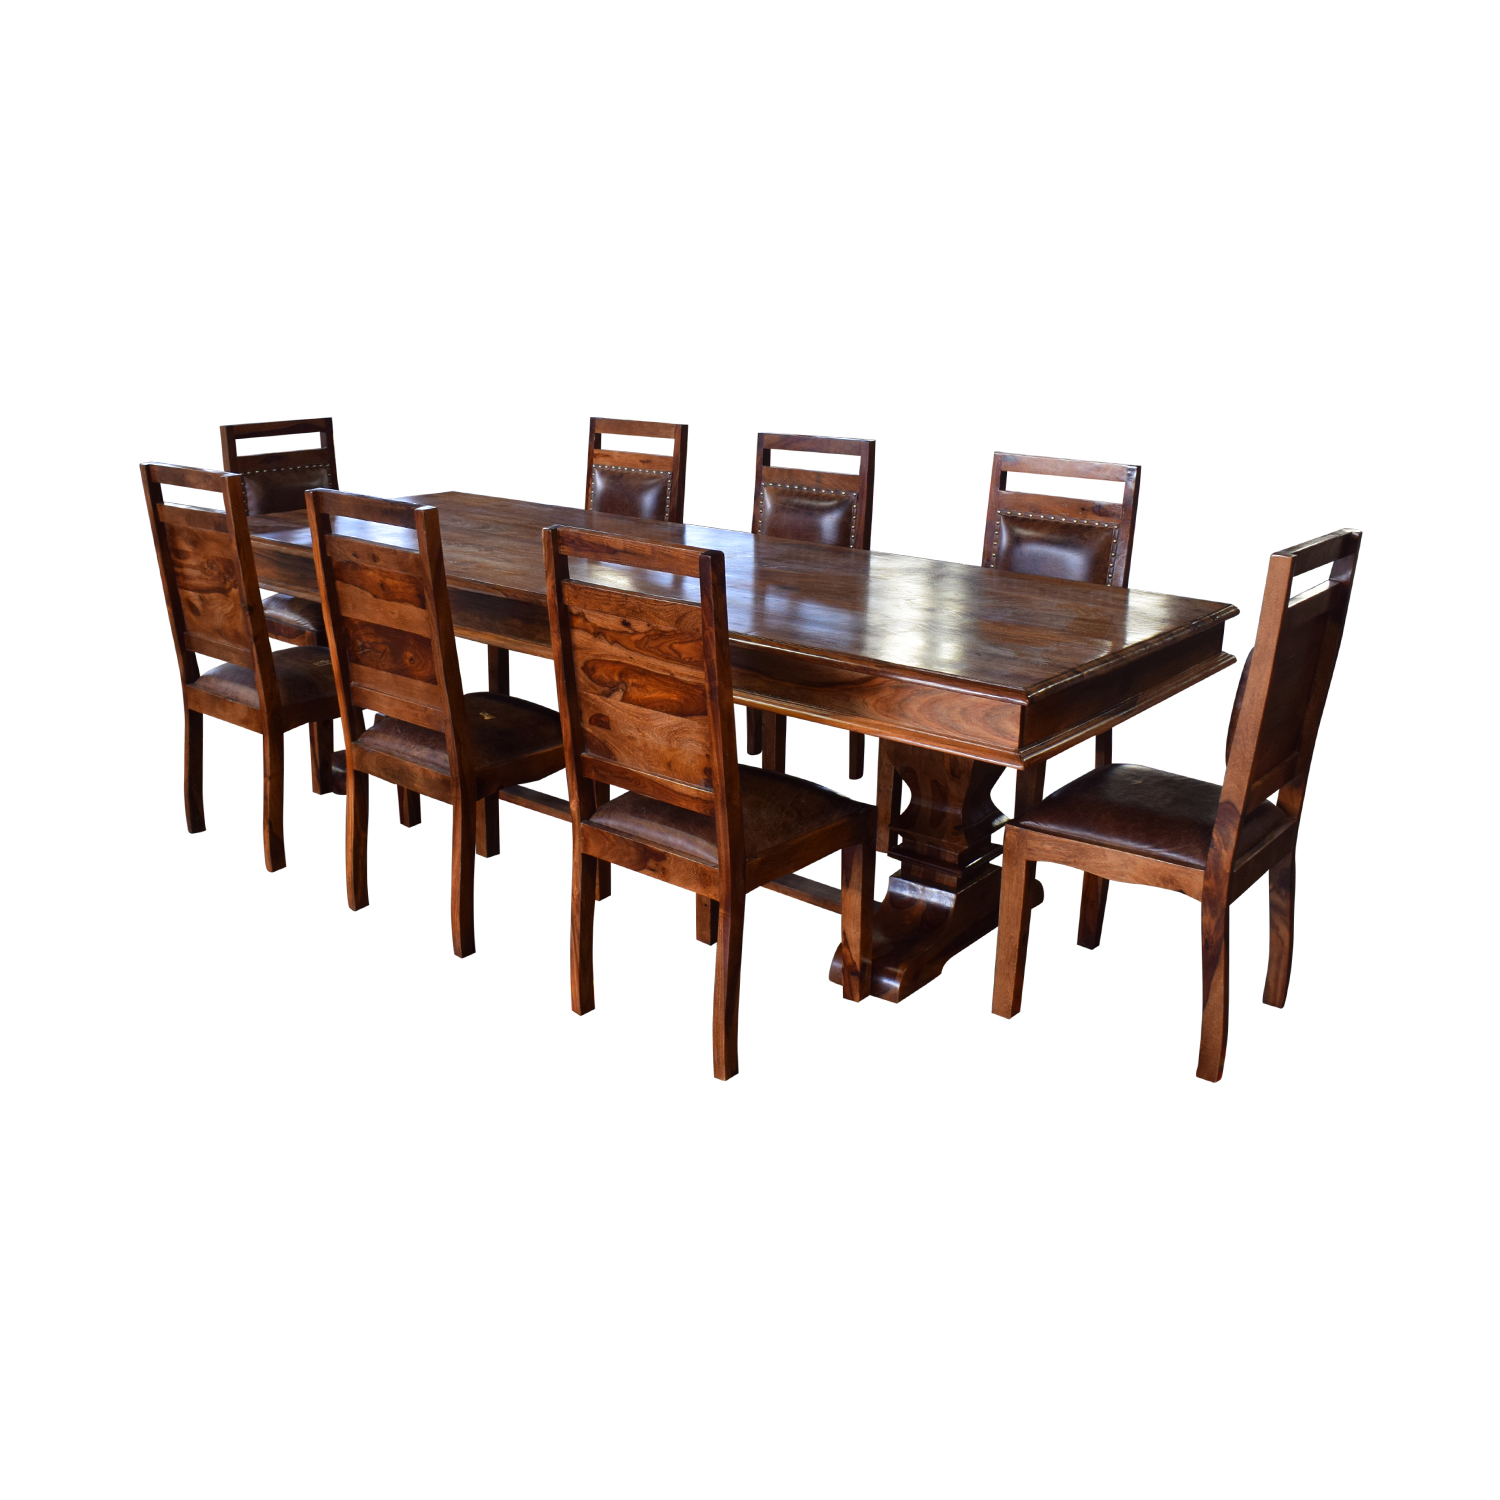 Sierra Living Concepts Wood Dining Set Sierra Living Concepts